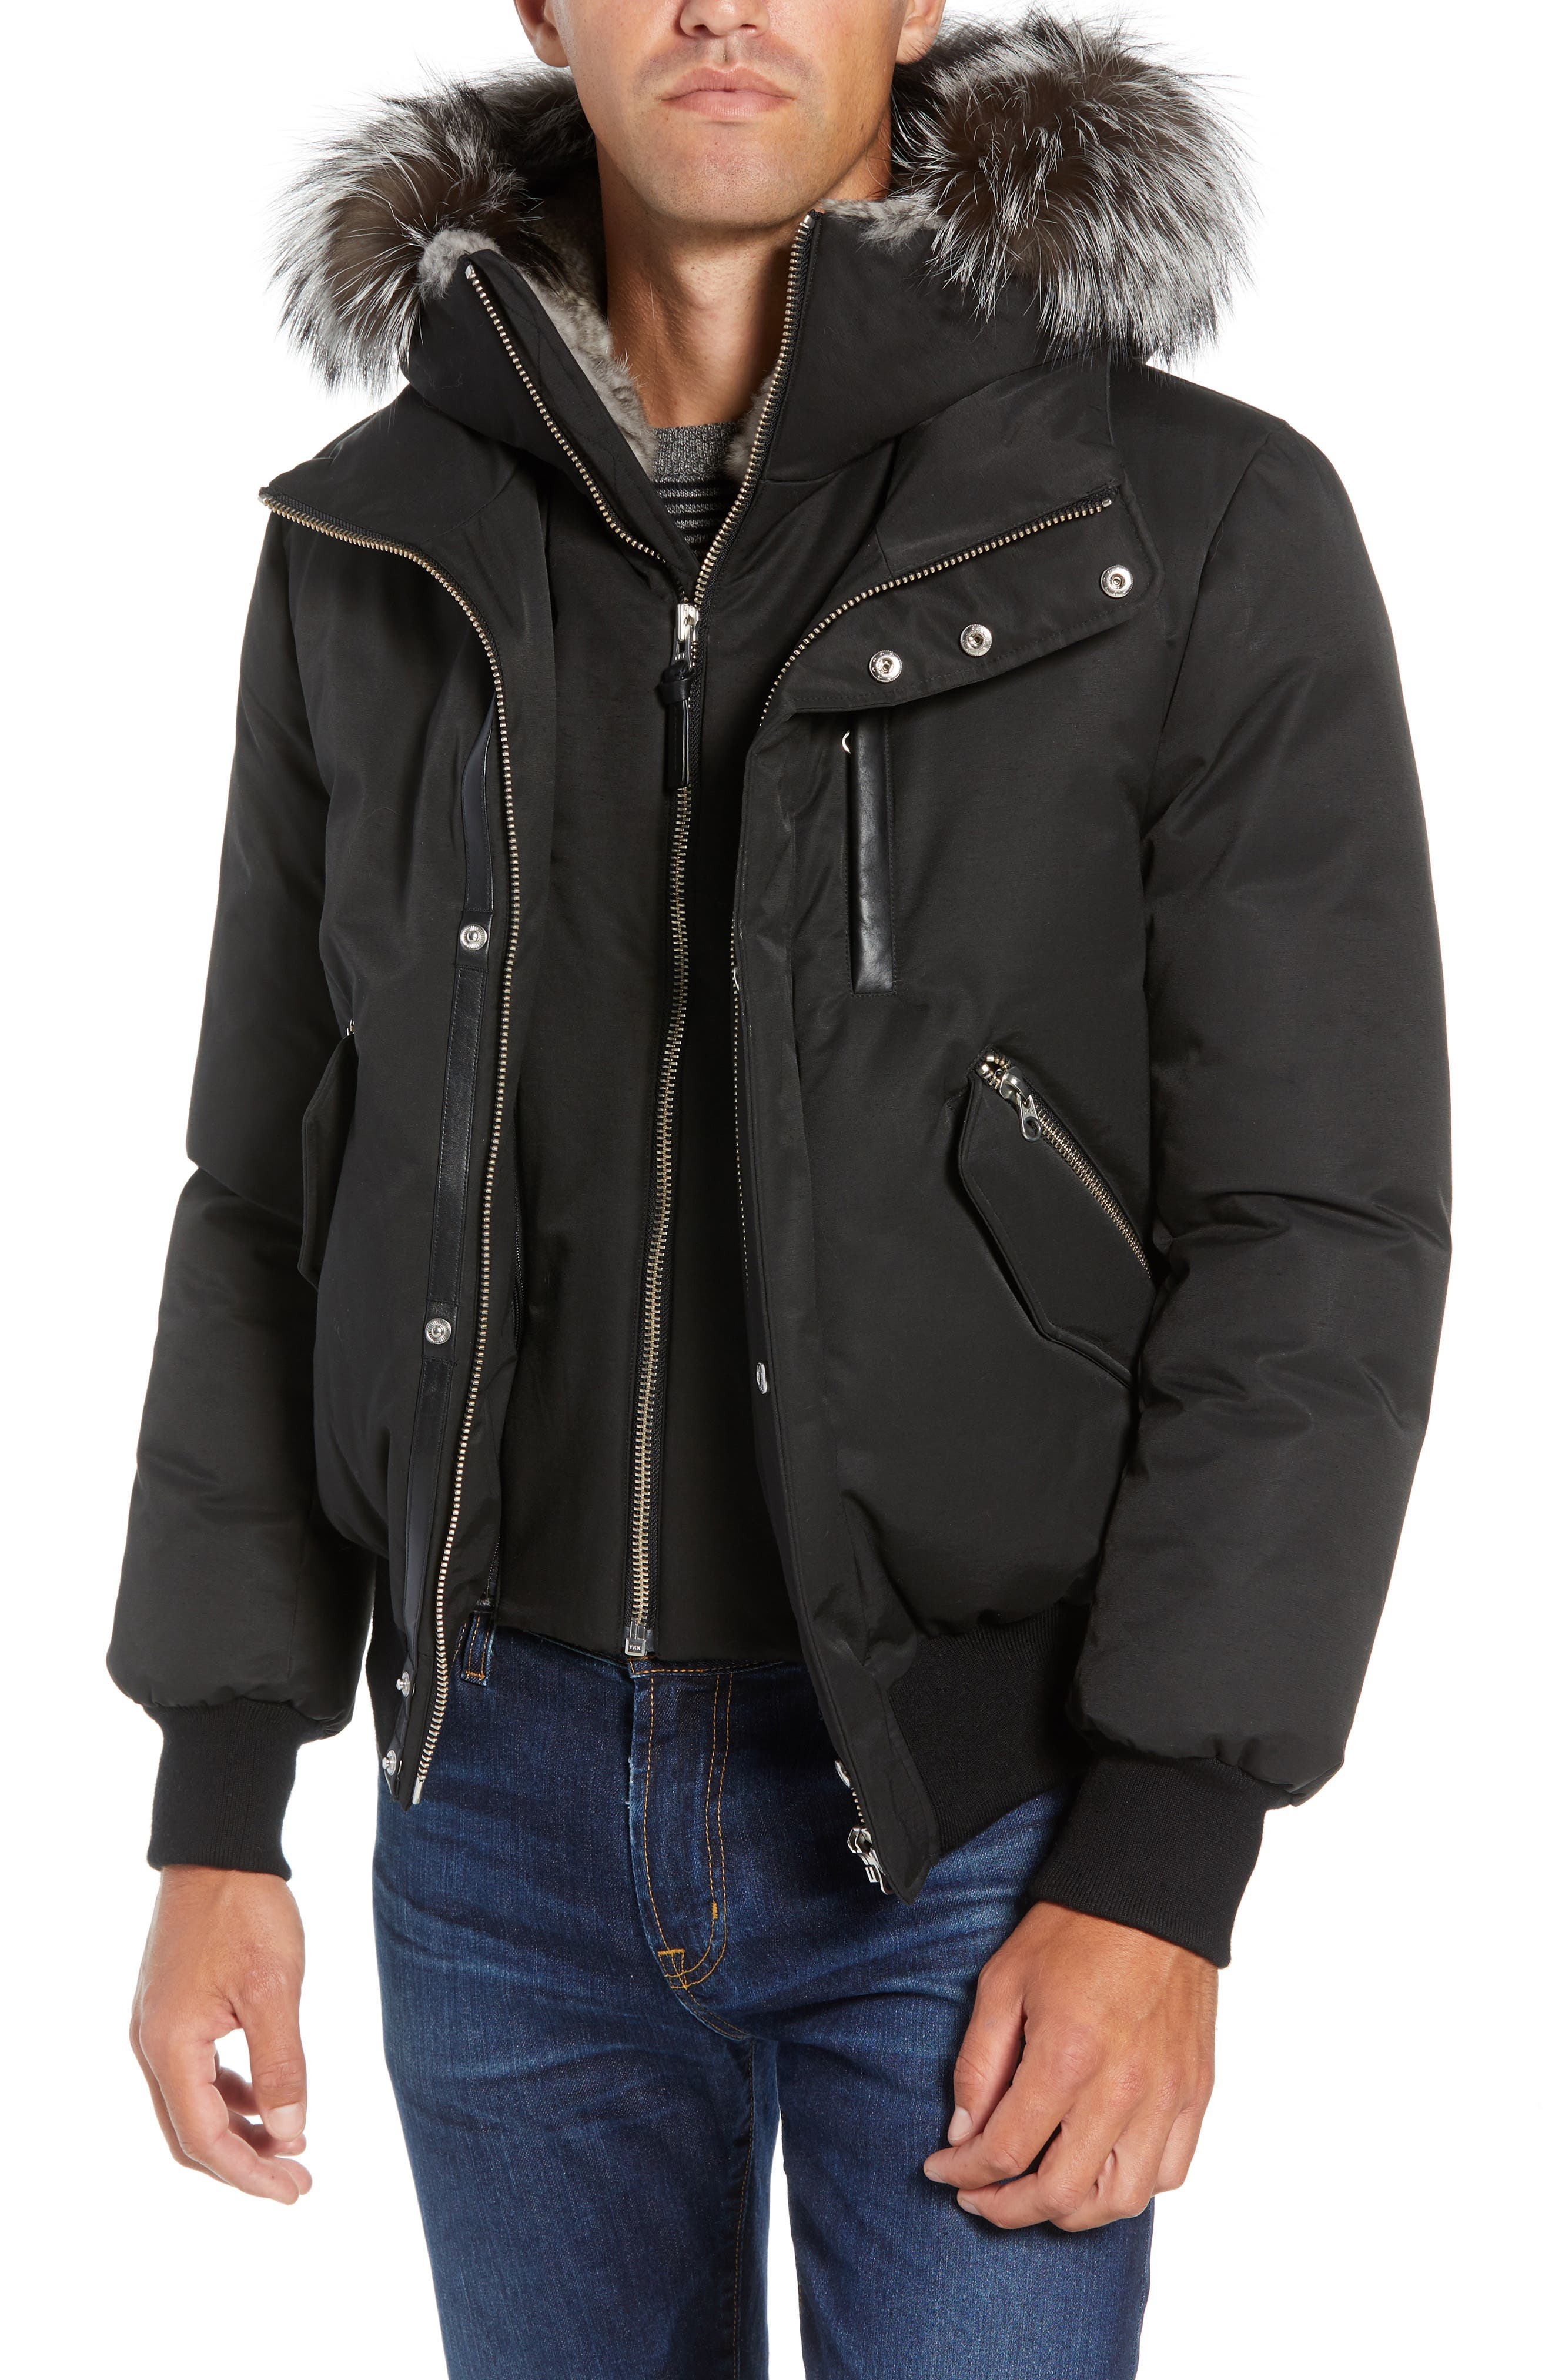 e9559239b Buy coats & jackets for men - Best men's coats & jackets shop ...